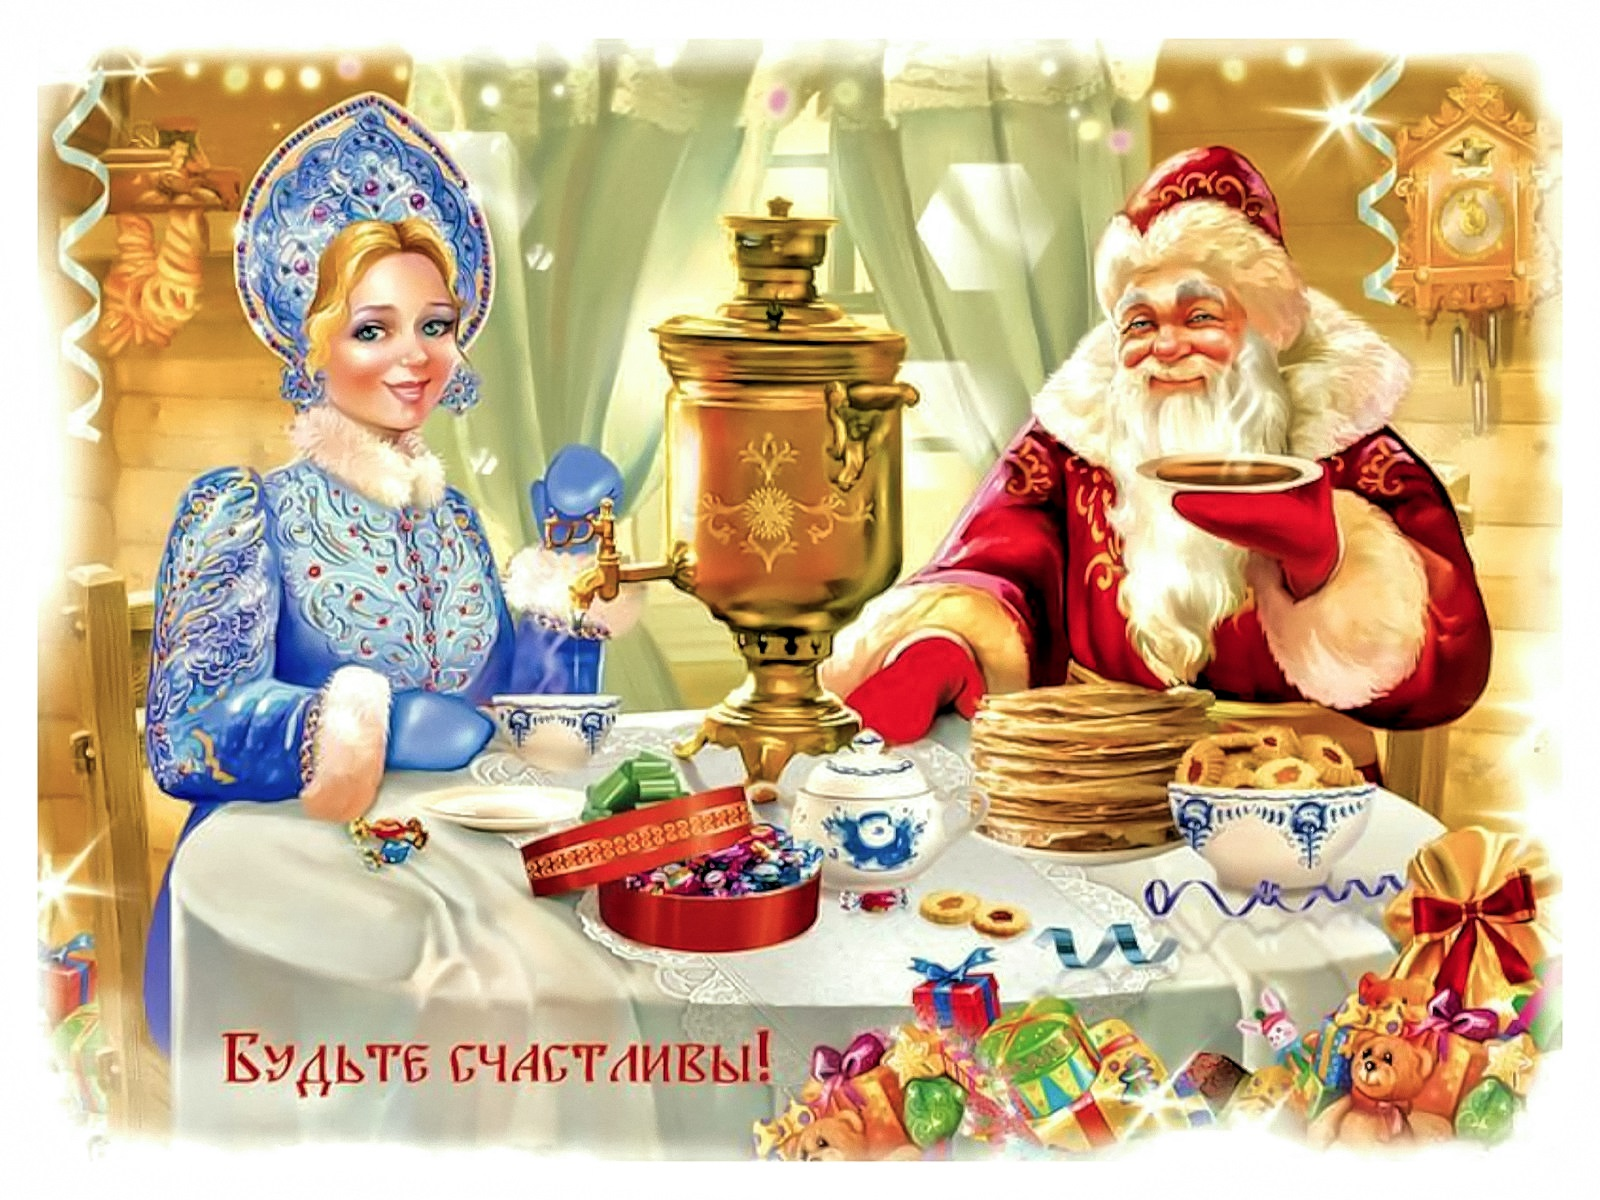 00-russia-new-year-2017-020117